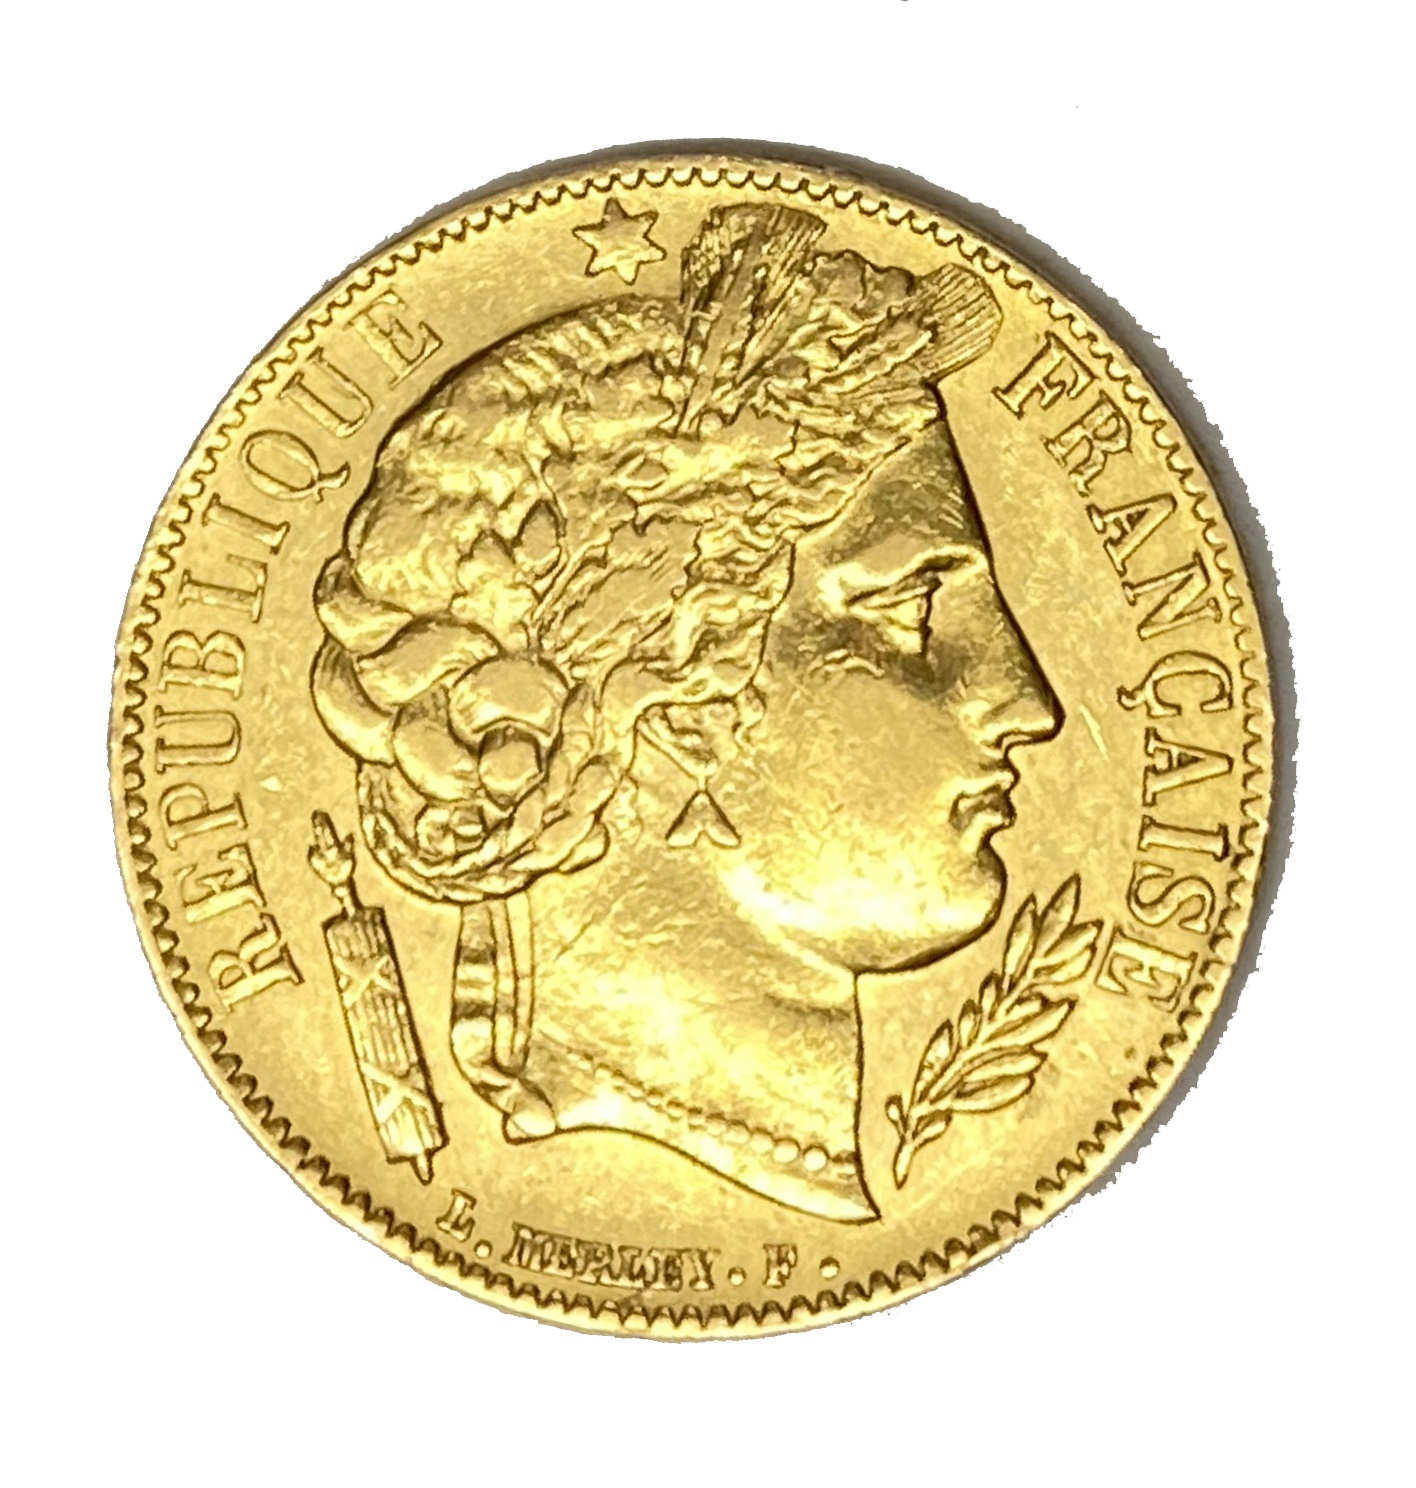 French Republic 20 Franc gold coin, 1851